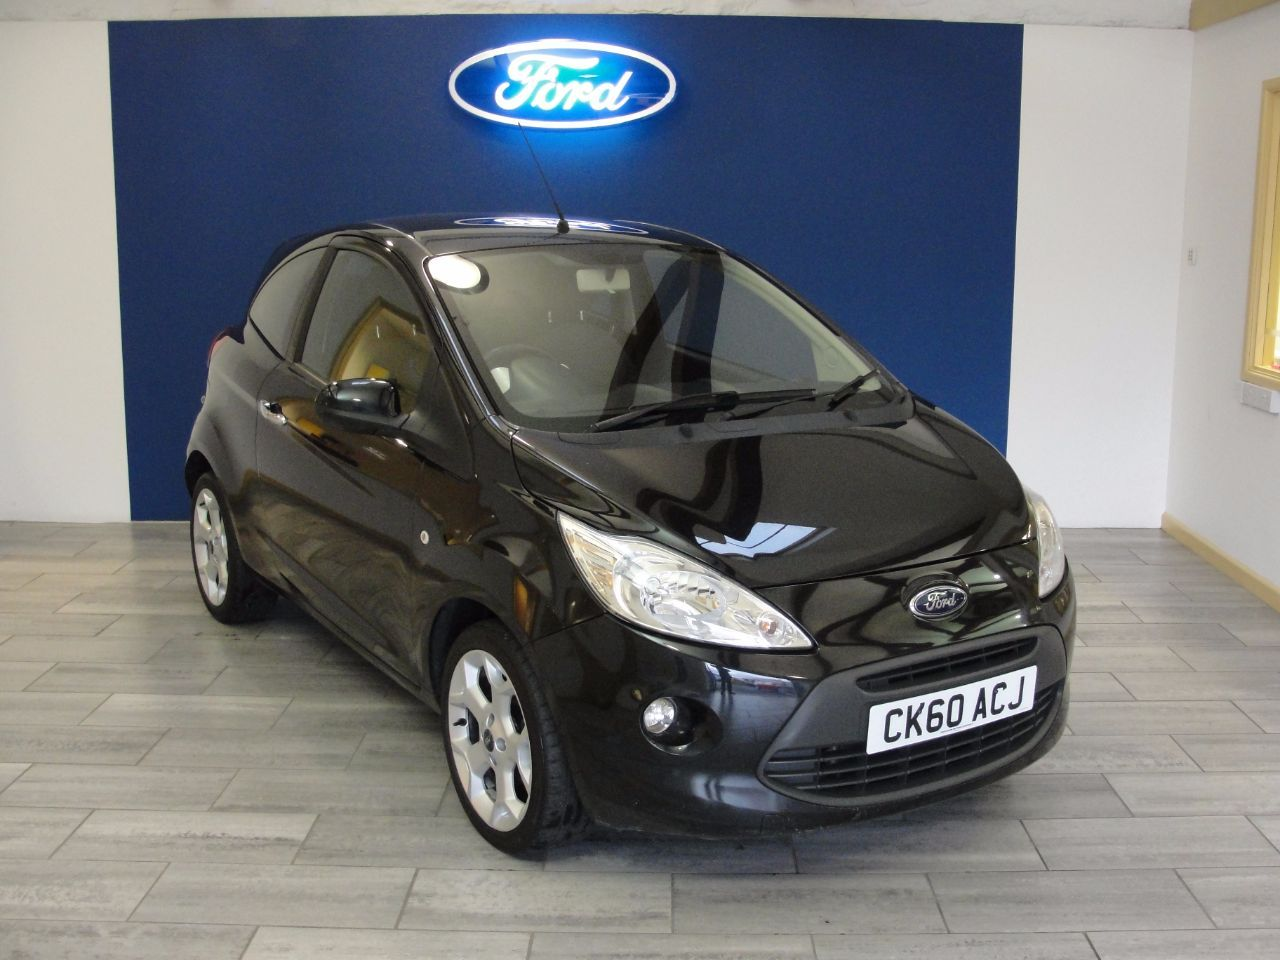 Ford Ka 1 2 Titanium 3dr Hatchback Petrol Black City Cars Used